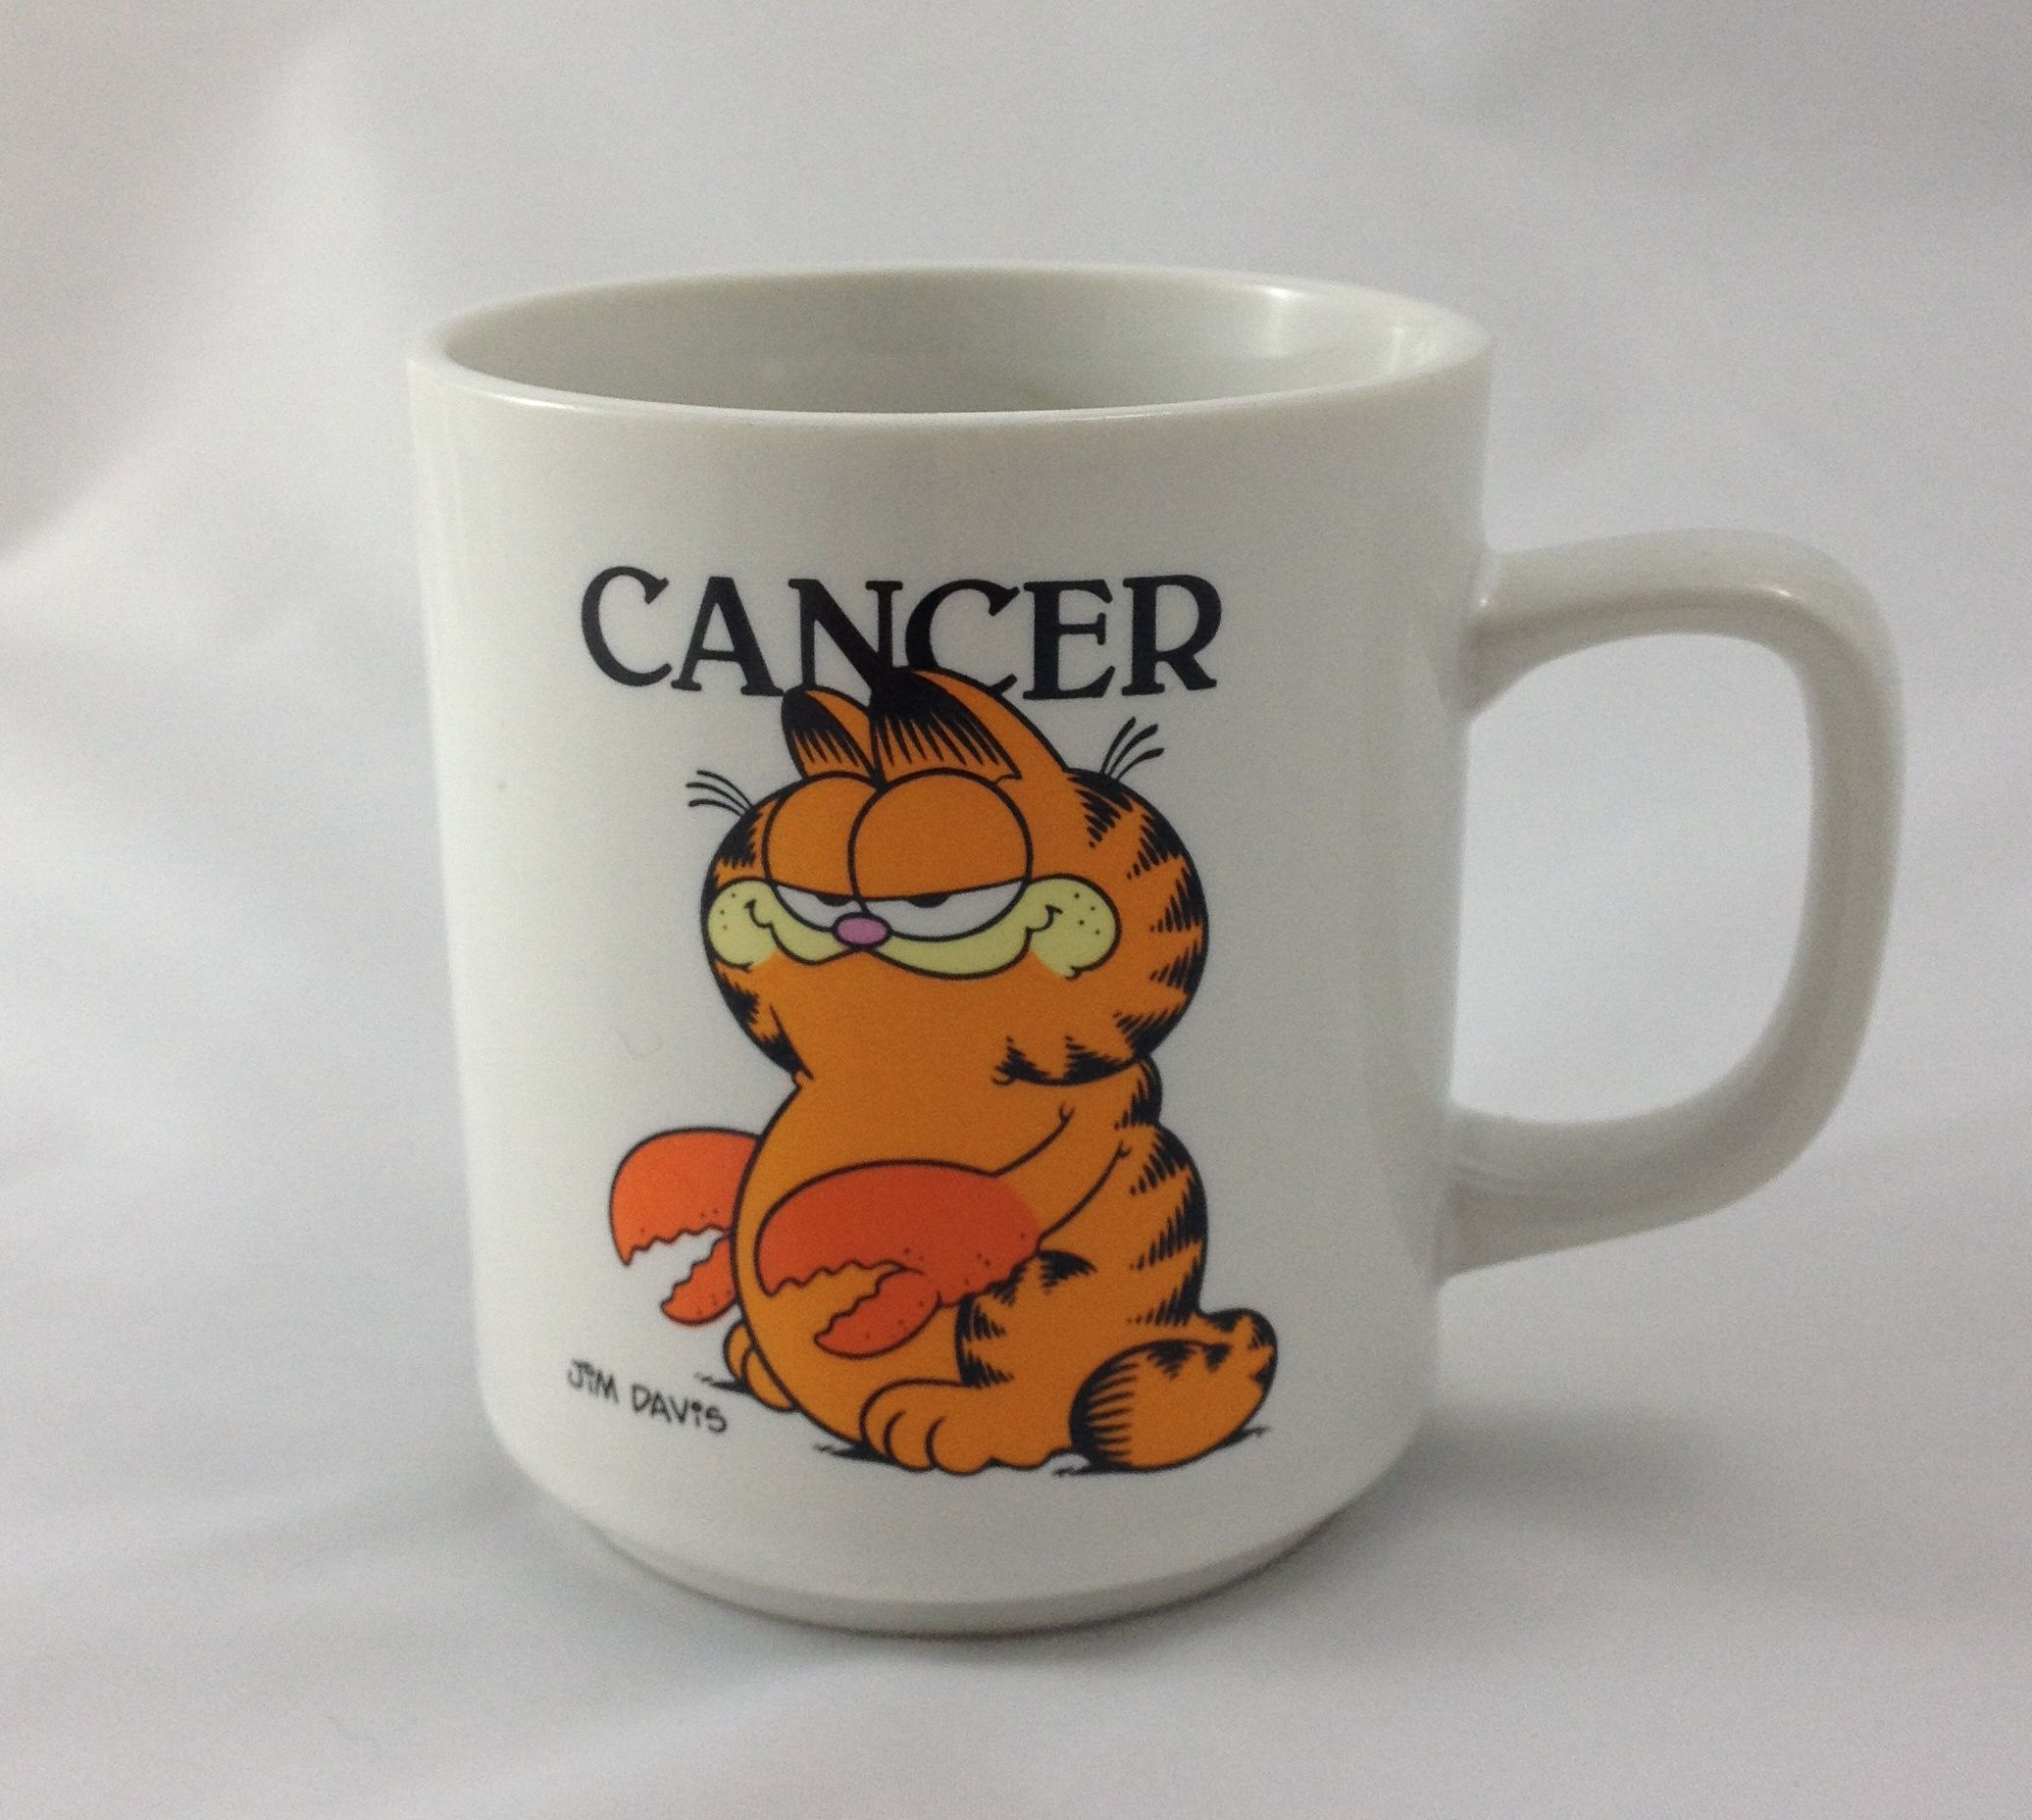 Certified international parisian fruit canister by susan winget set - Garfield Cancer Horoscope Mug Coffee Cup June July Crab Vintage 1978 Zodiac